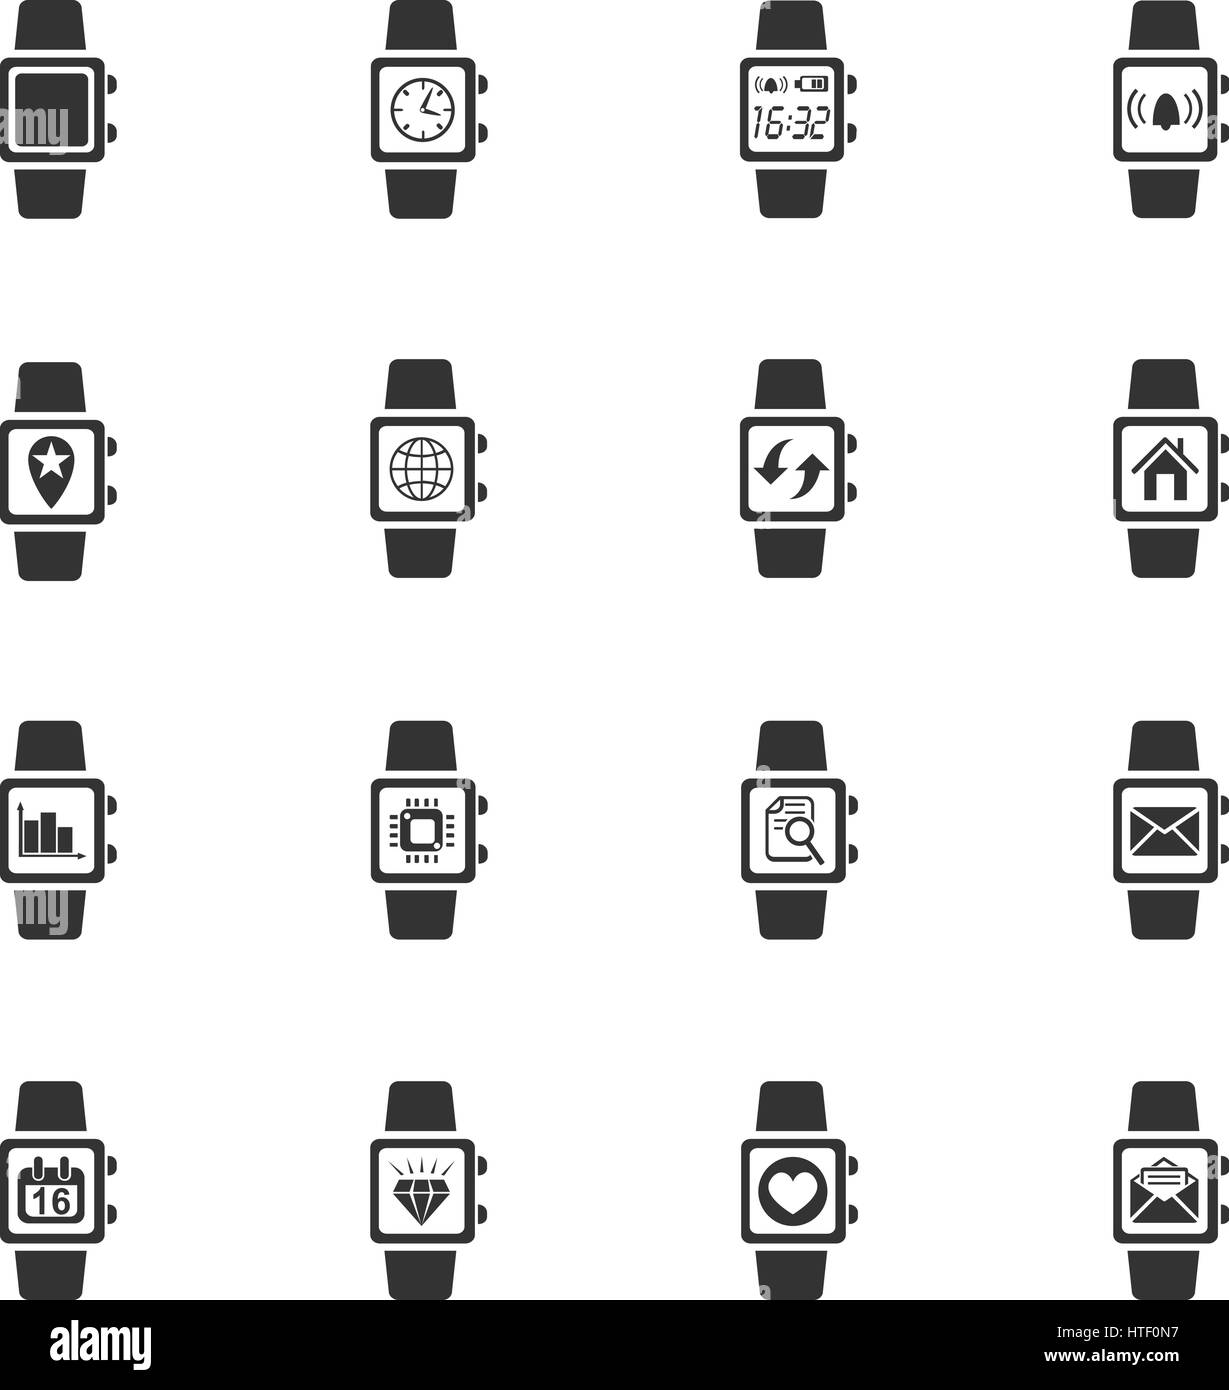 smart watch web icons for user interface design - Stock Image